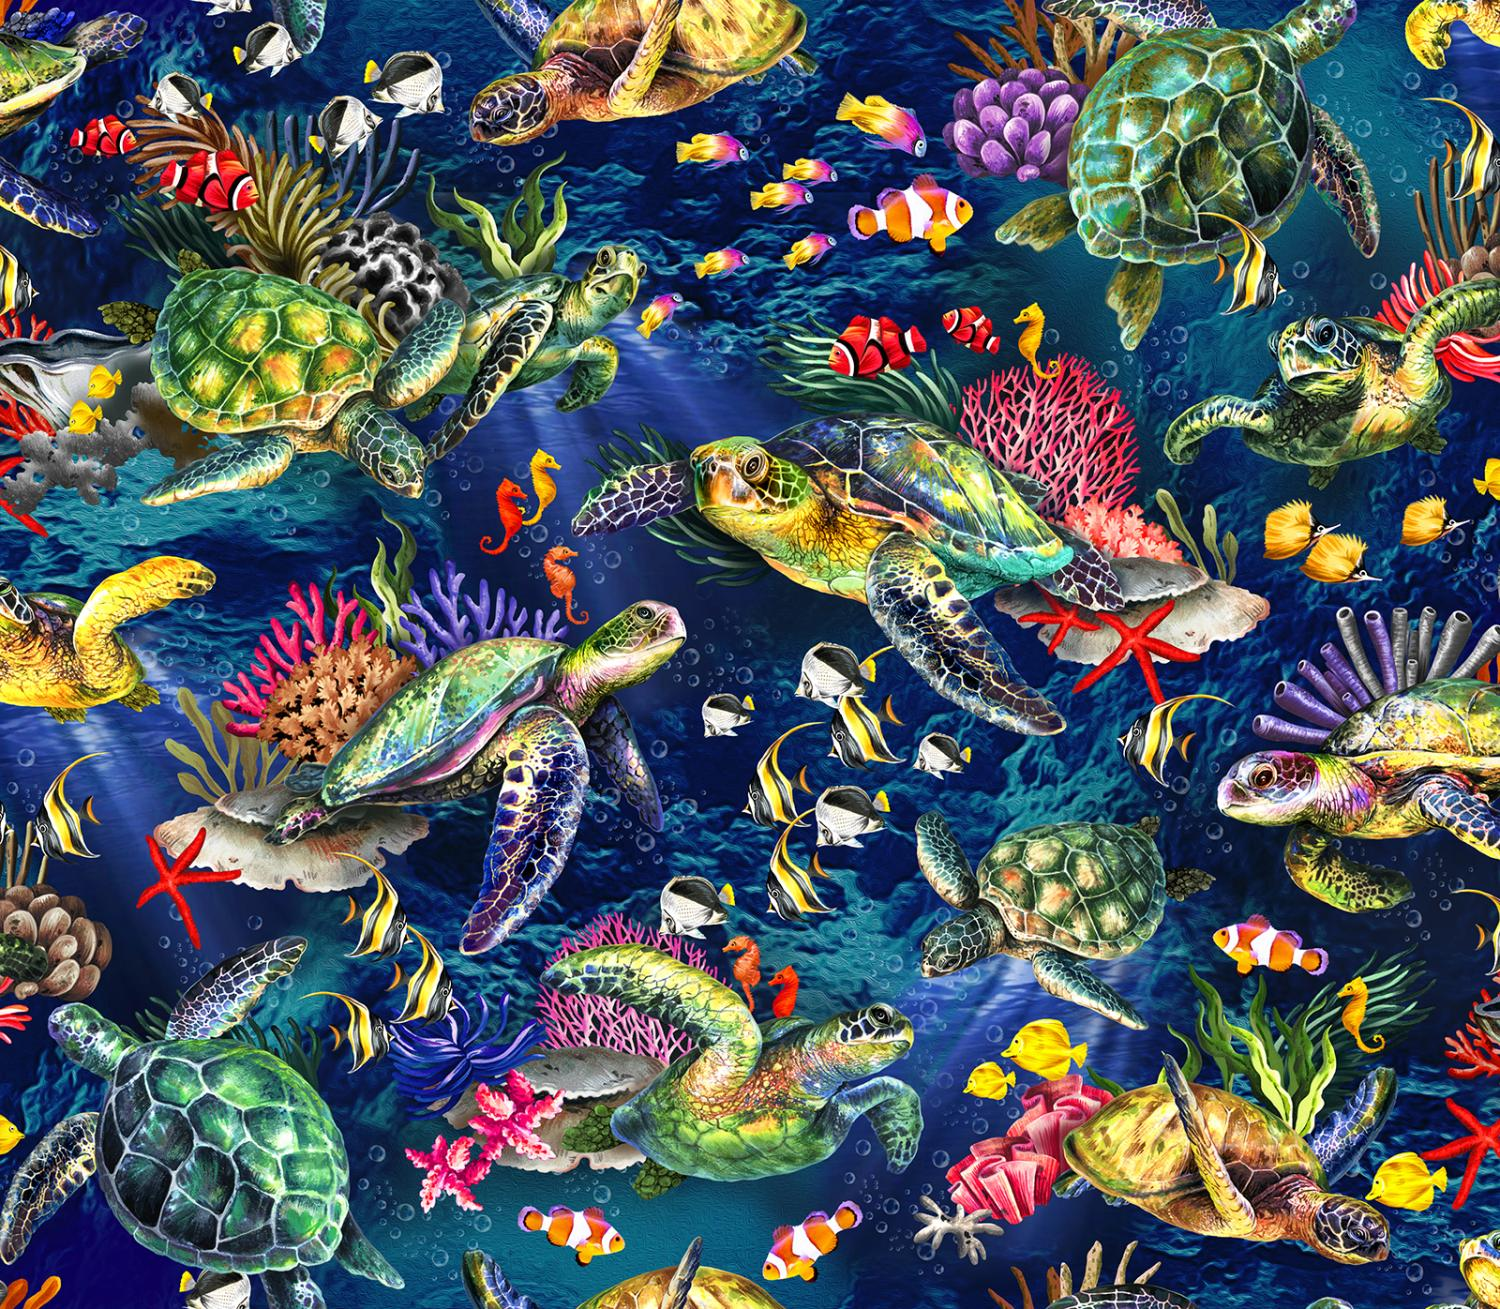 The Reef - Sea Turtles